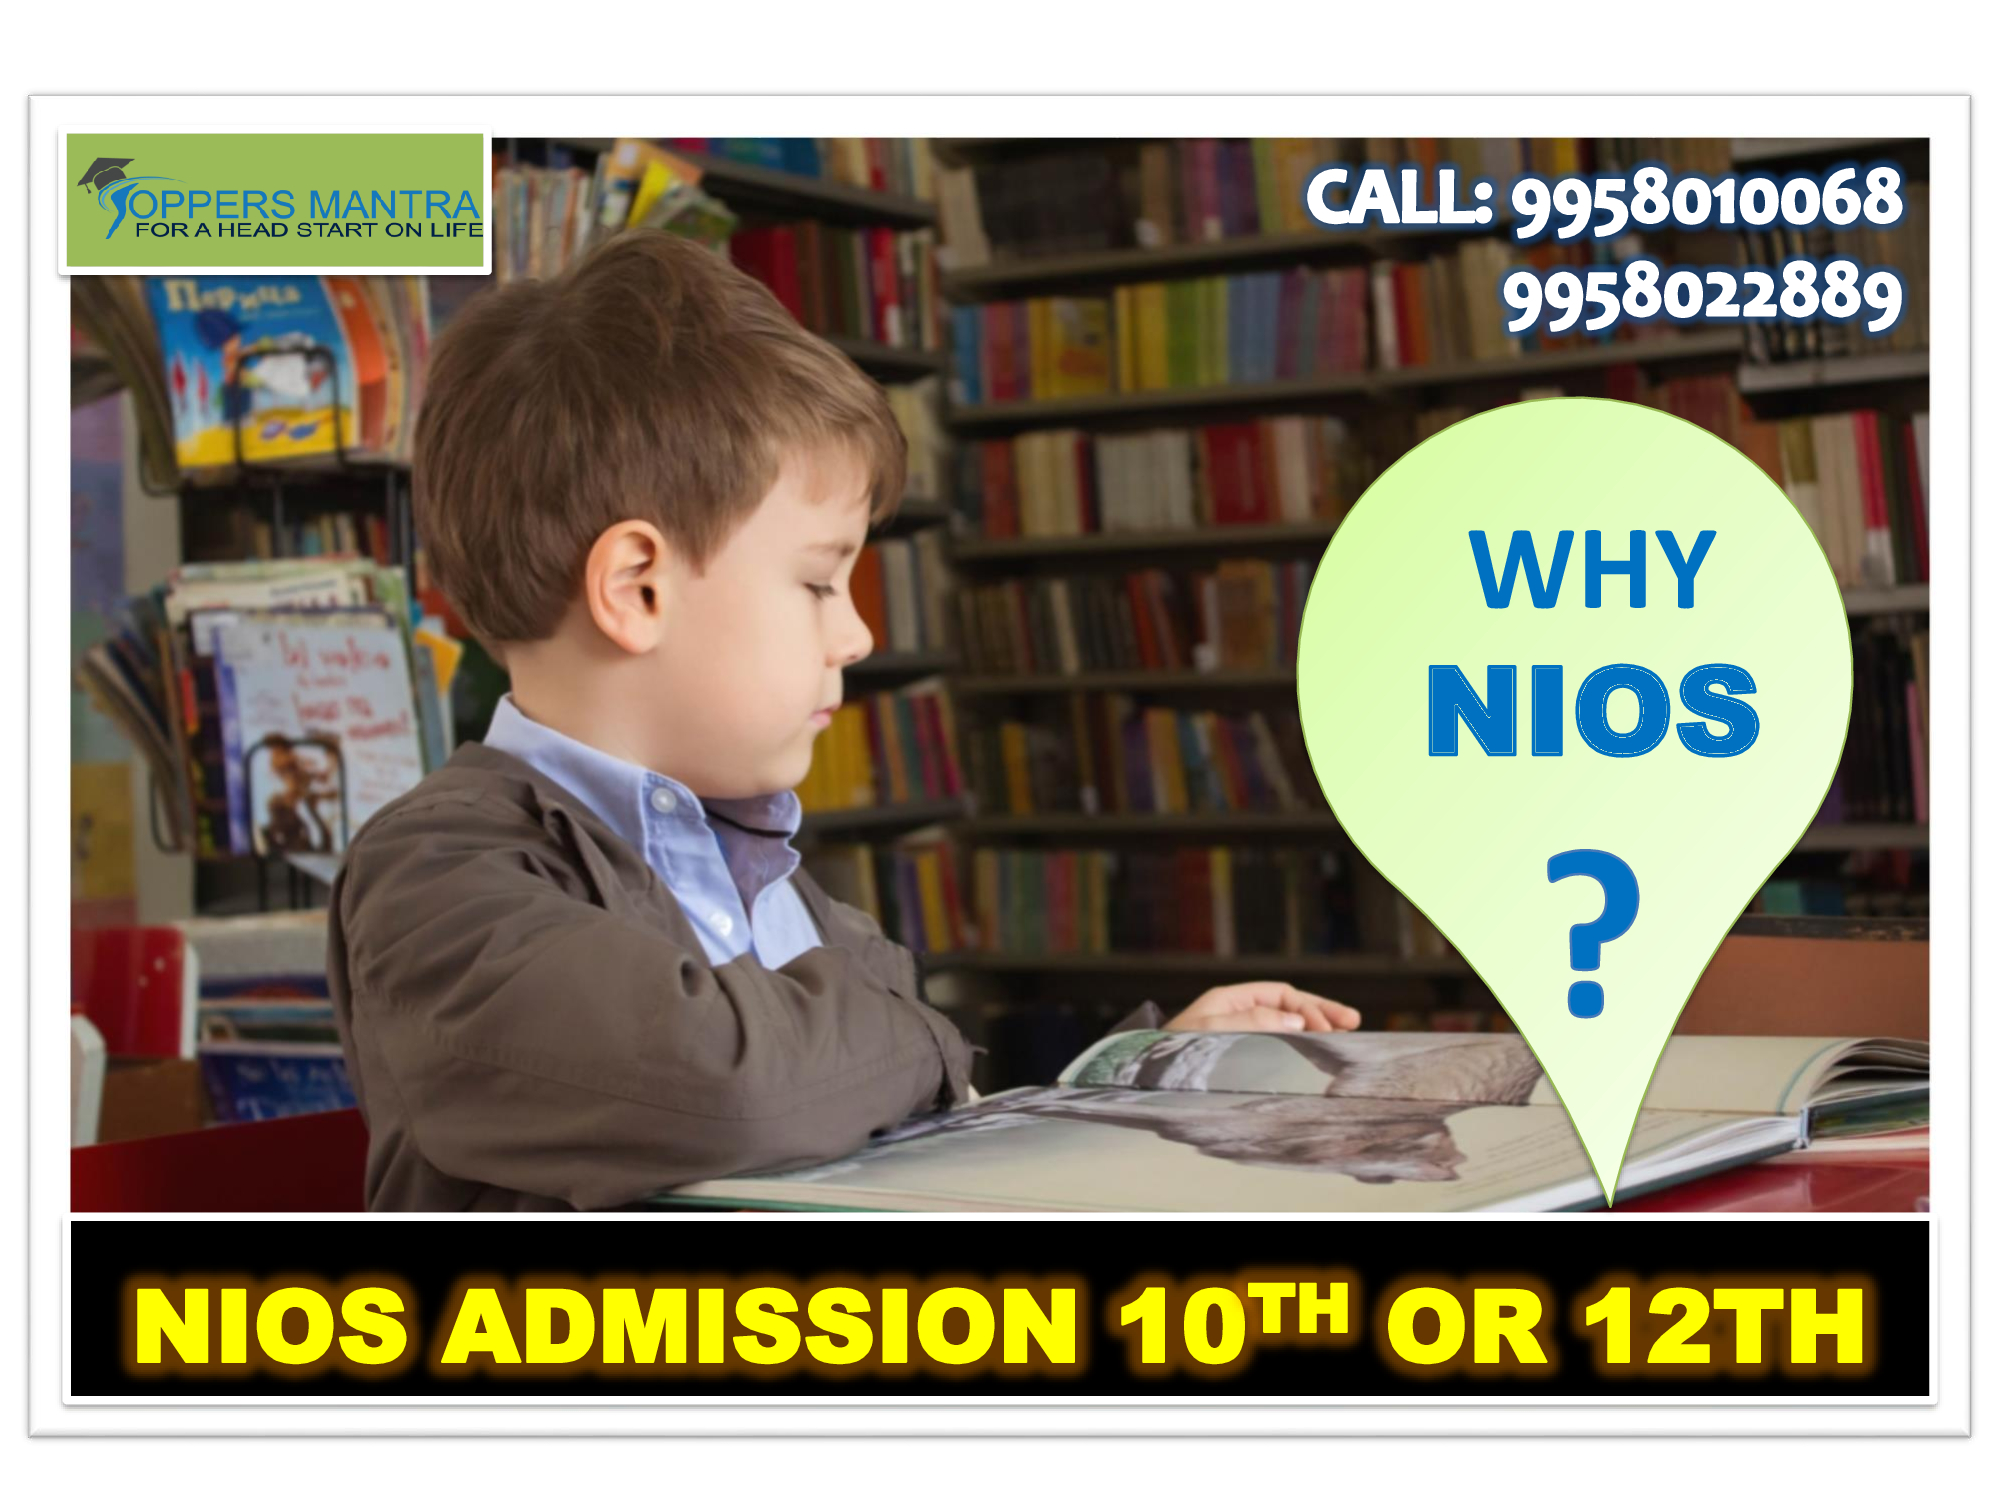 nios admission, nios 10th 12th admission